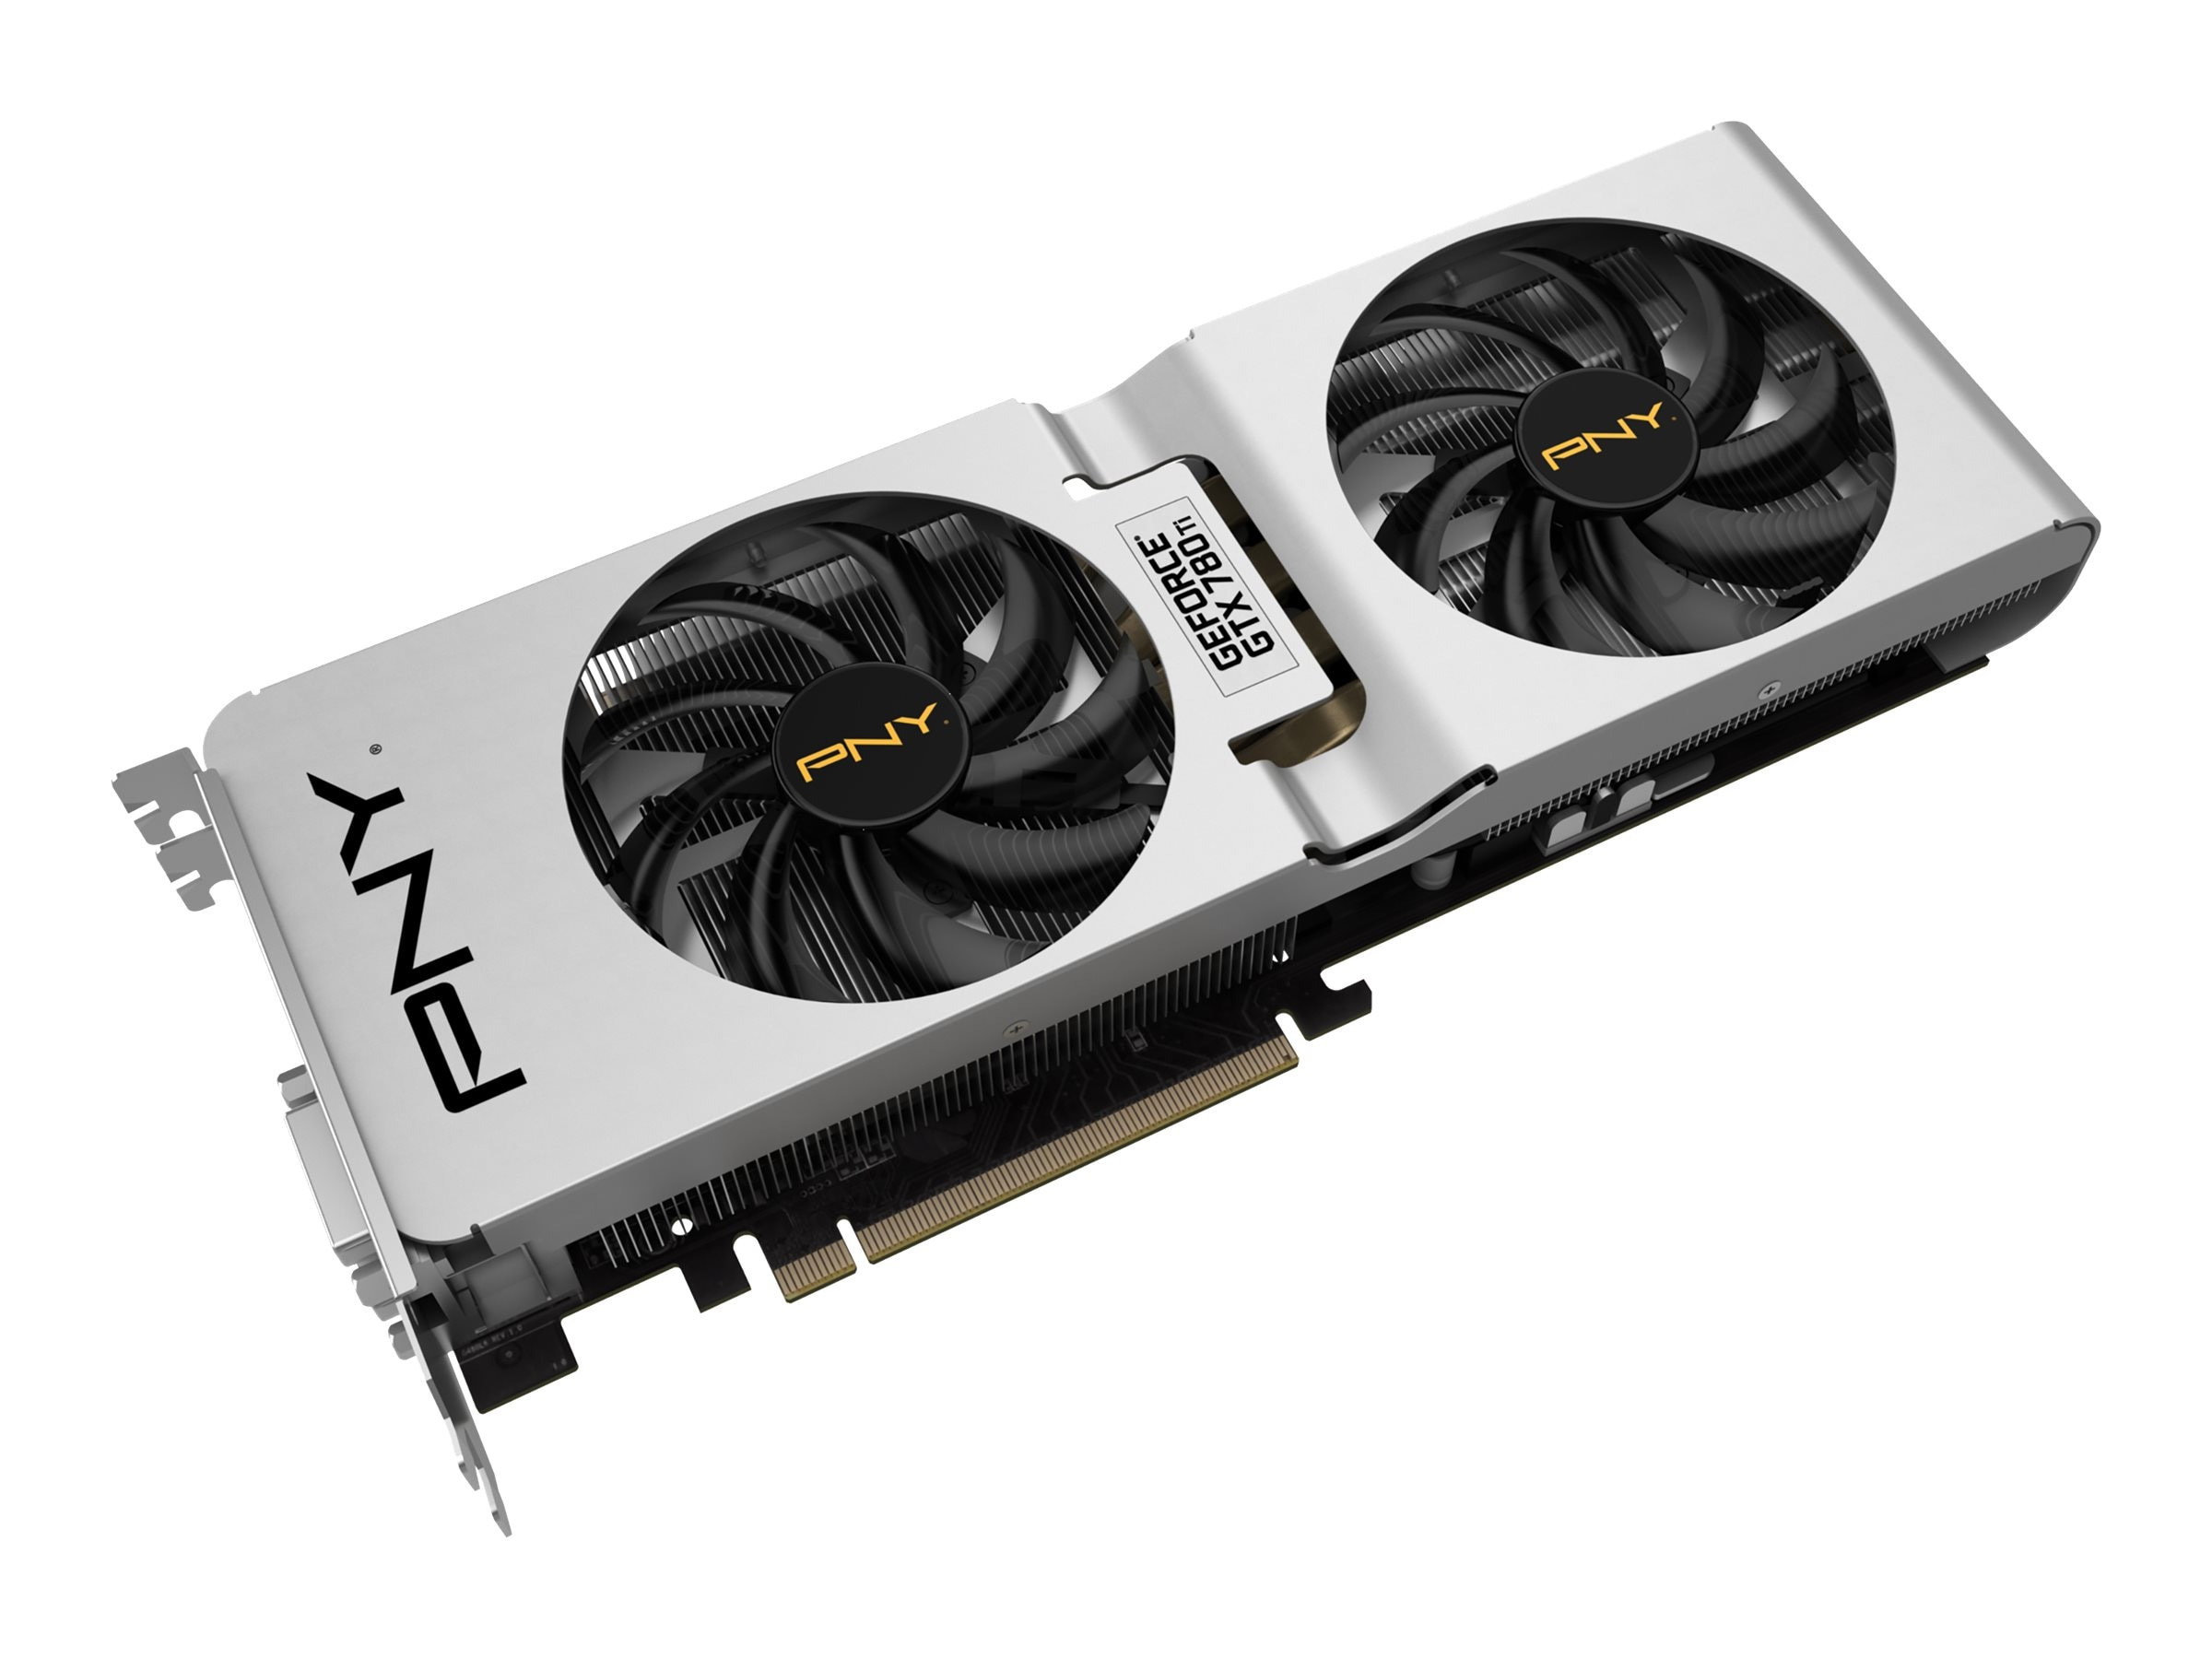 PNY GeForce GTX 780 Ti PCIe 3.0 Overclocked Custom Cooled Graphics Card, 3GB GDDR5